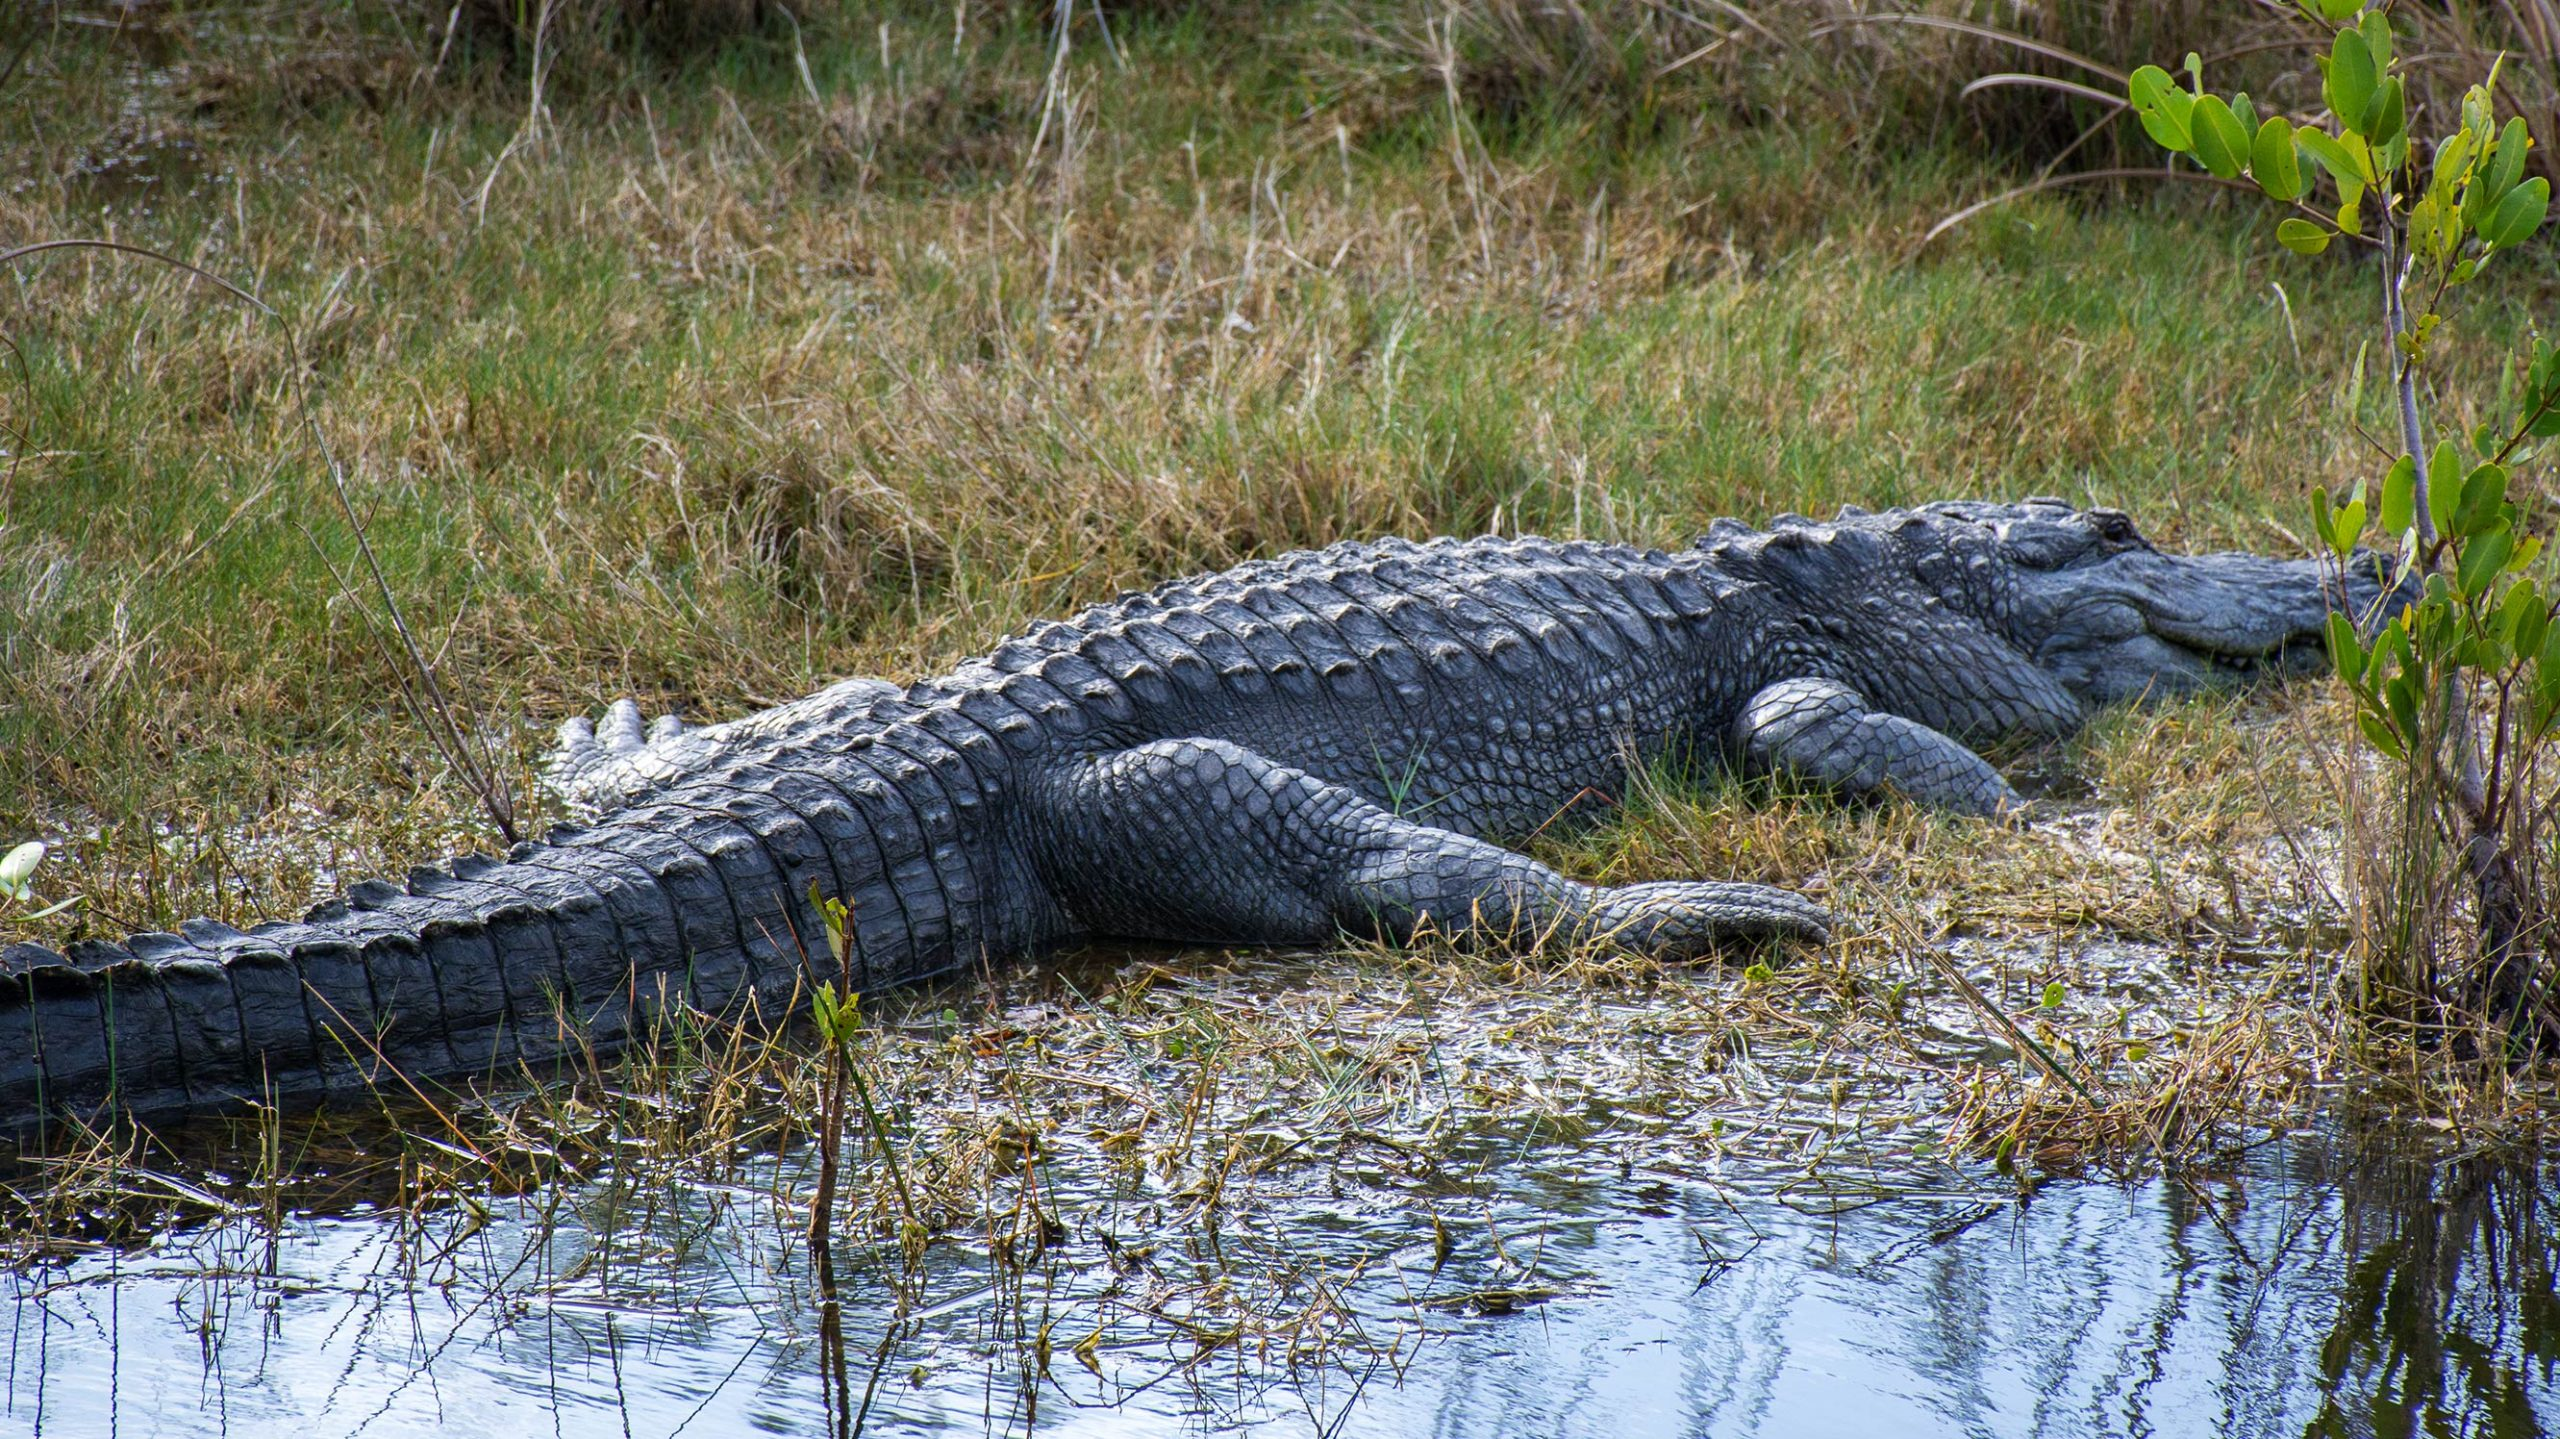 An American alligator finds a place of solitude in Blue Cypress Conservation Area in Indian River County.